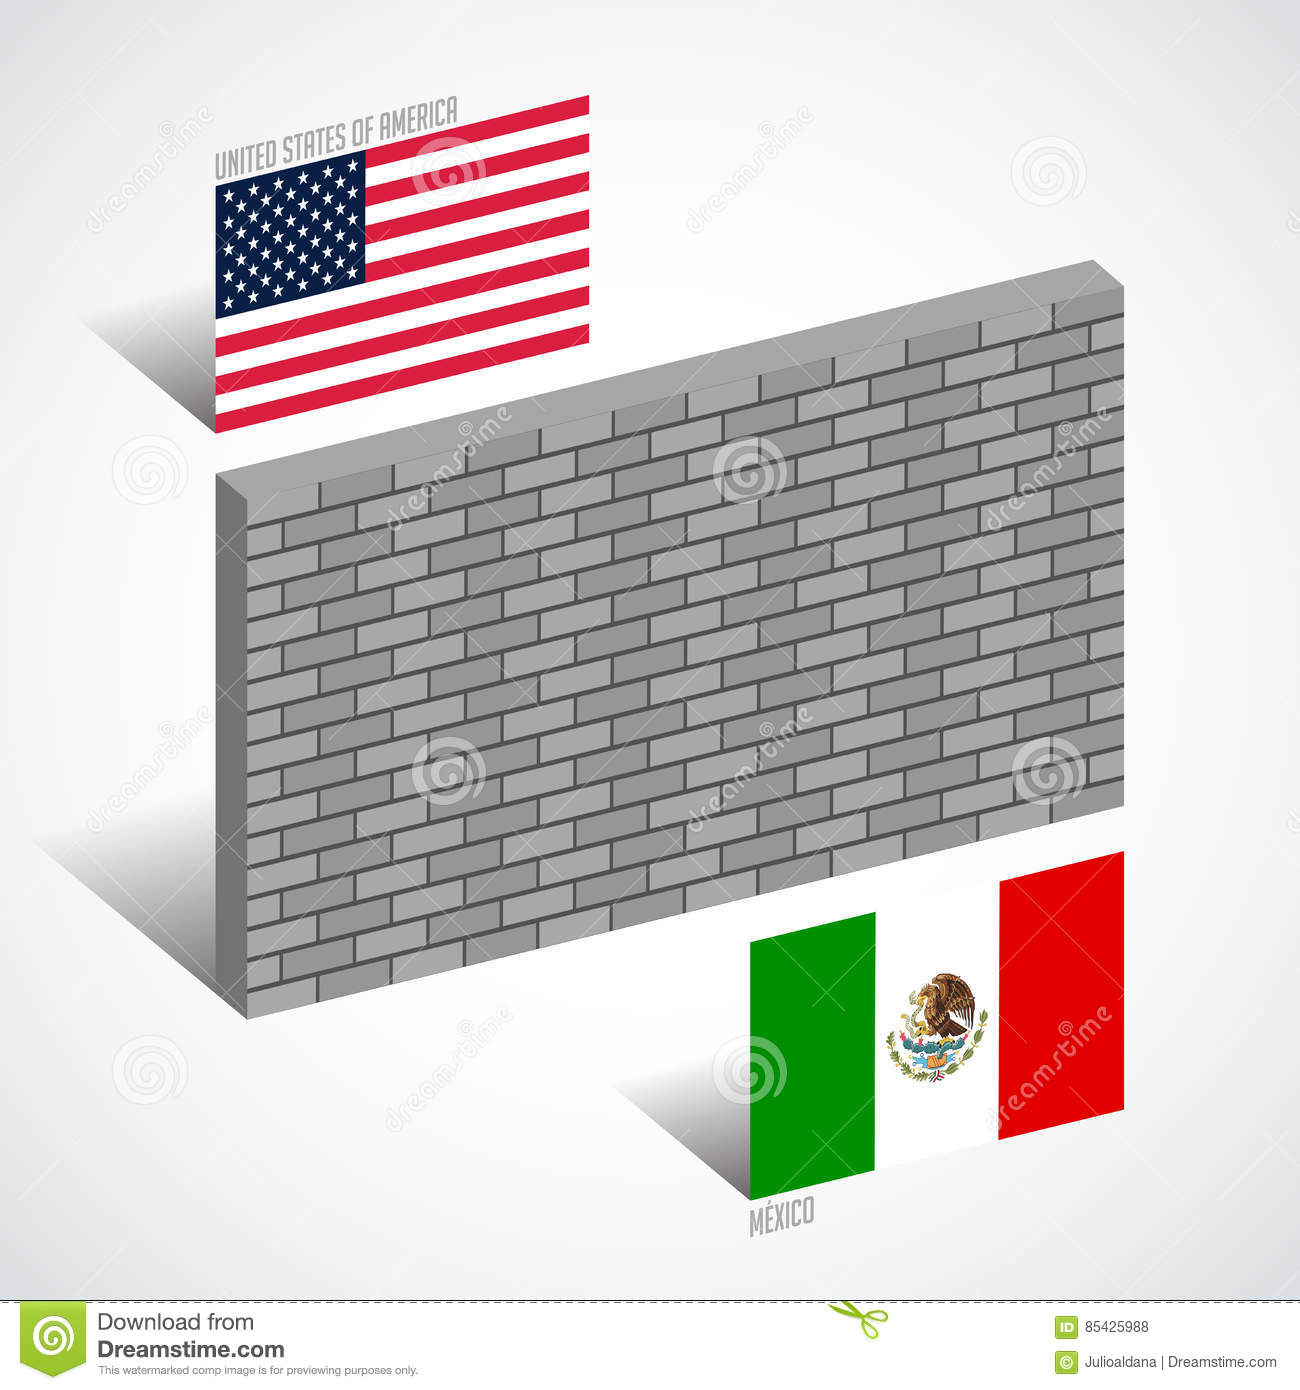 Wall between the United States and Mexico, border wall concept